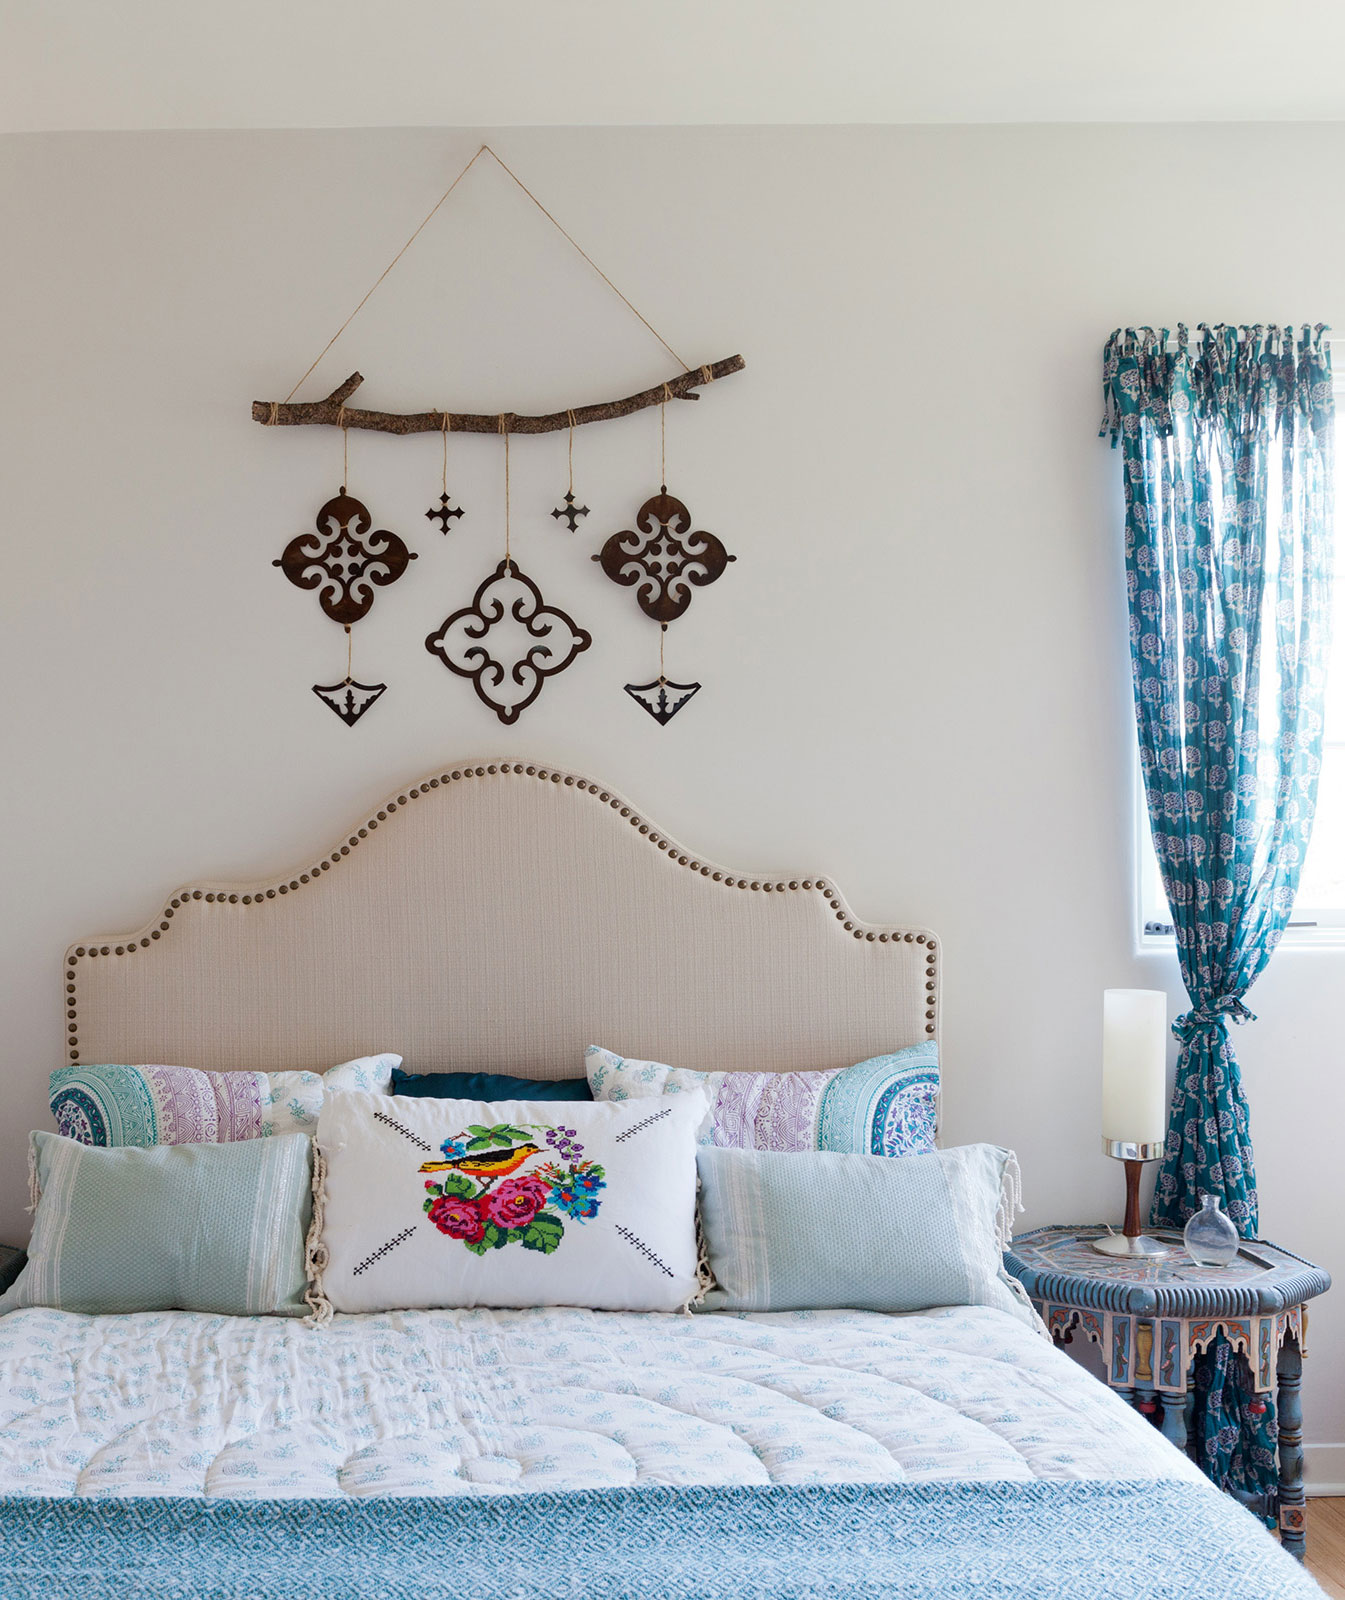 Bedroom with wall hanging and blue accents